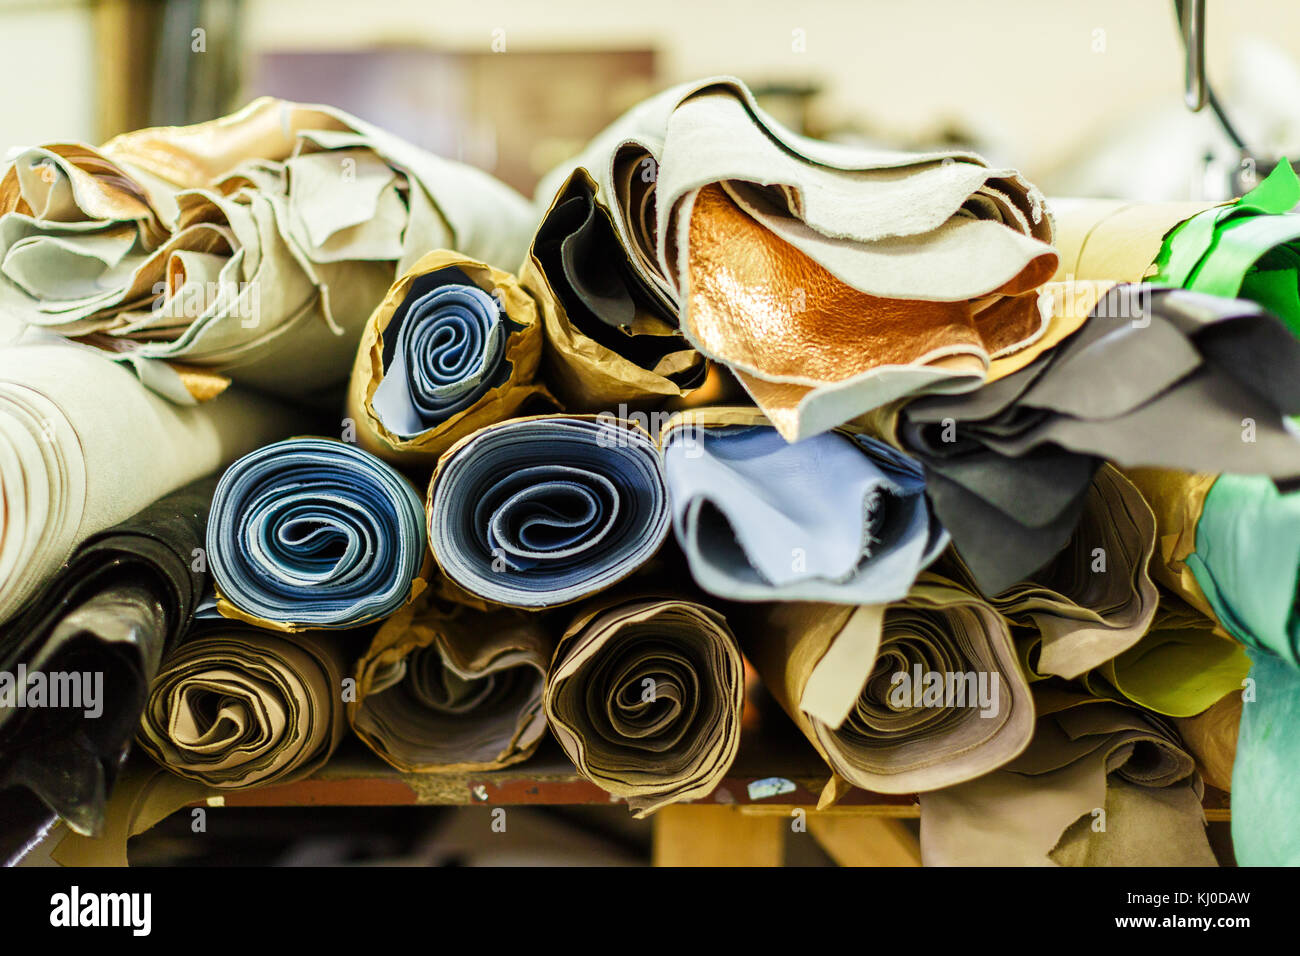 Rolls of fabric wrapped in craft paper lying on each other stock rolls of fabric wrapped in craft paper lying on each other manufacture close up photo jeuxipadfo Images